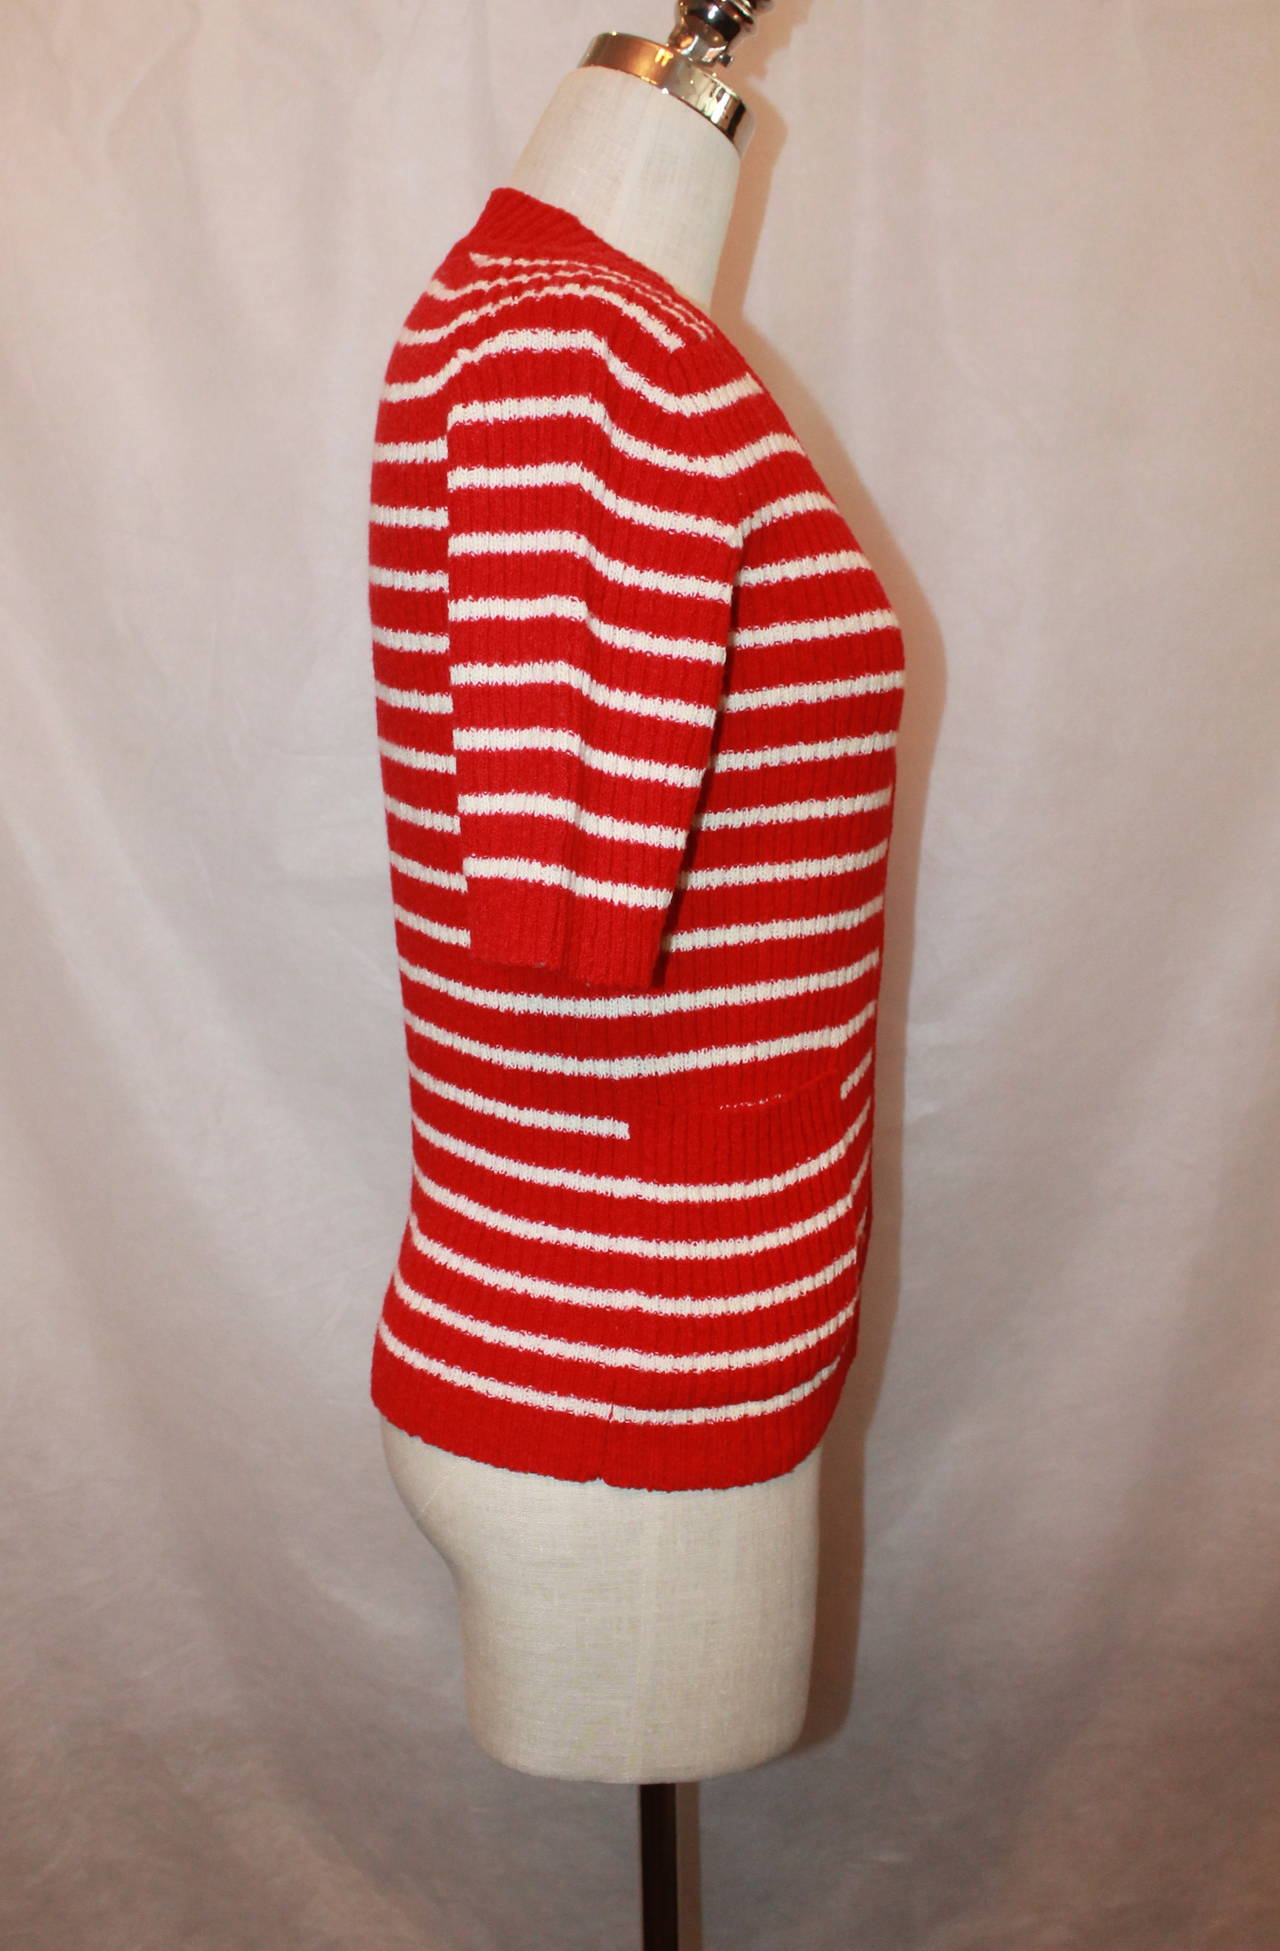 Lanvin 1970's Red & White Striped Wool Blend Short Sleeve Cardigan - 42 3